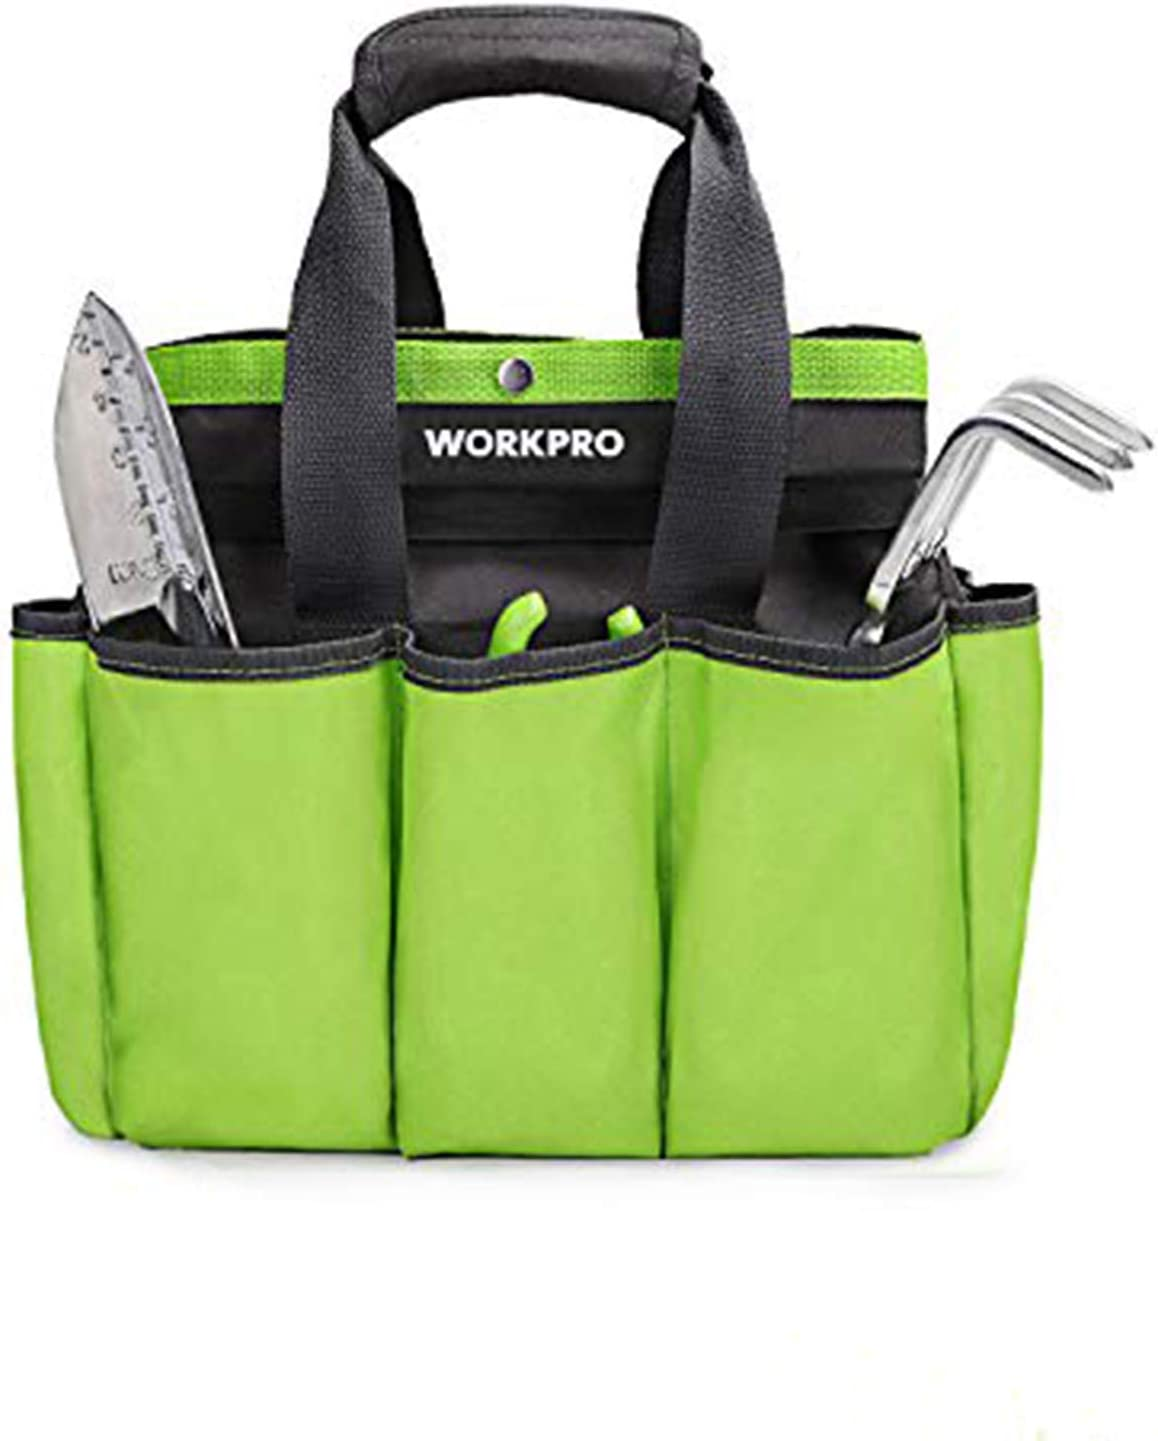 "WORKPRO Garden Tool Bag, Garden Tote Bag with 8 Oxford Pockets for Indoor and Outdoor Gardening, Garden Tools Set, 12""x 12"" x 6"" (Tools NOT Included)"